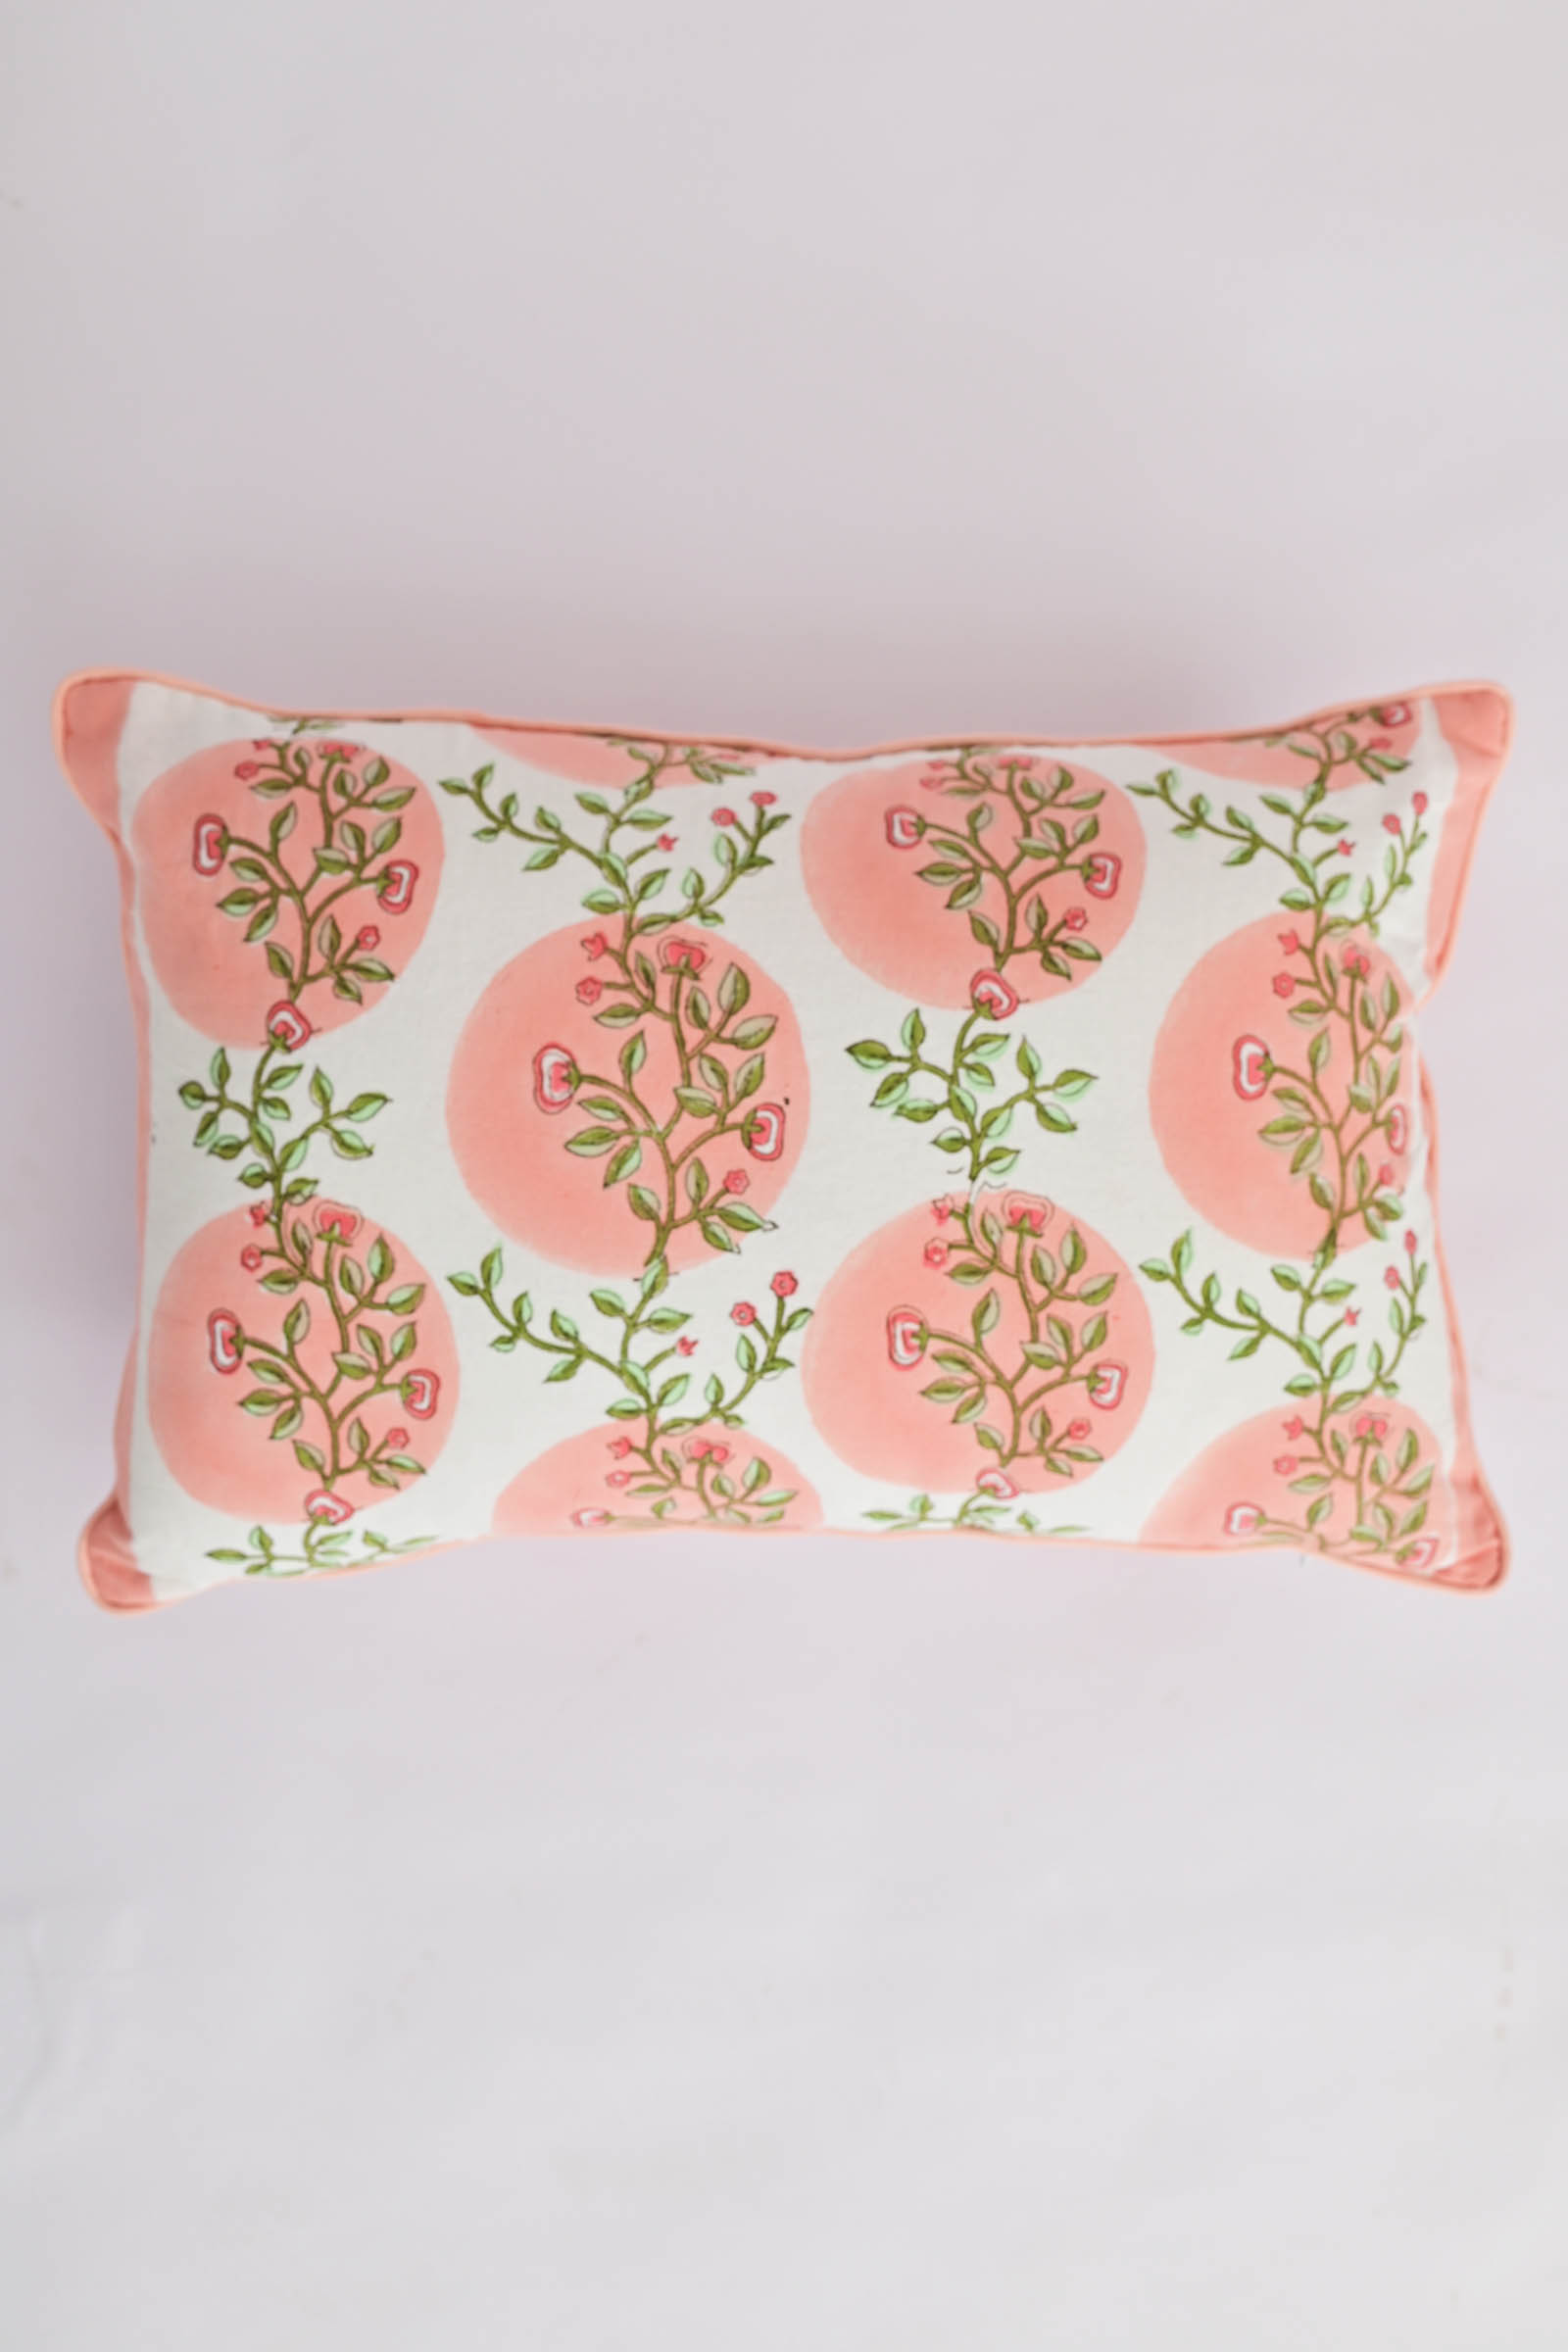 Blooming Trail 12*18 Cushion Cover